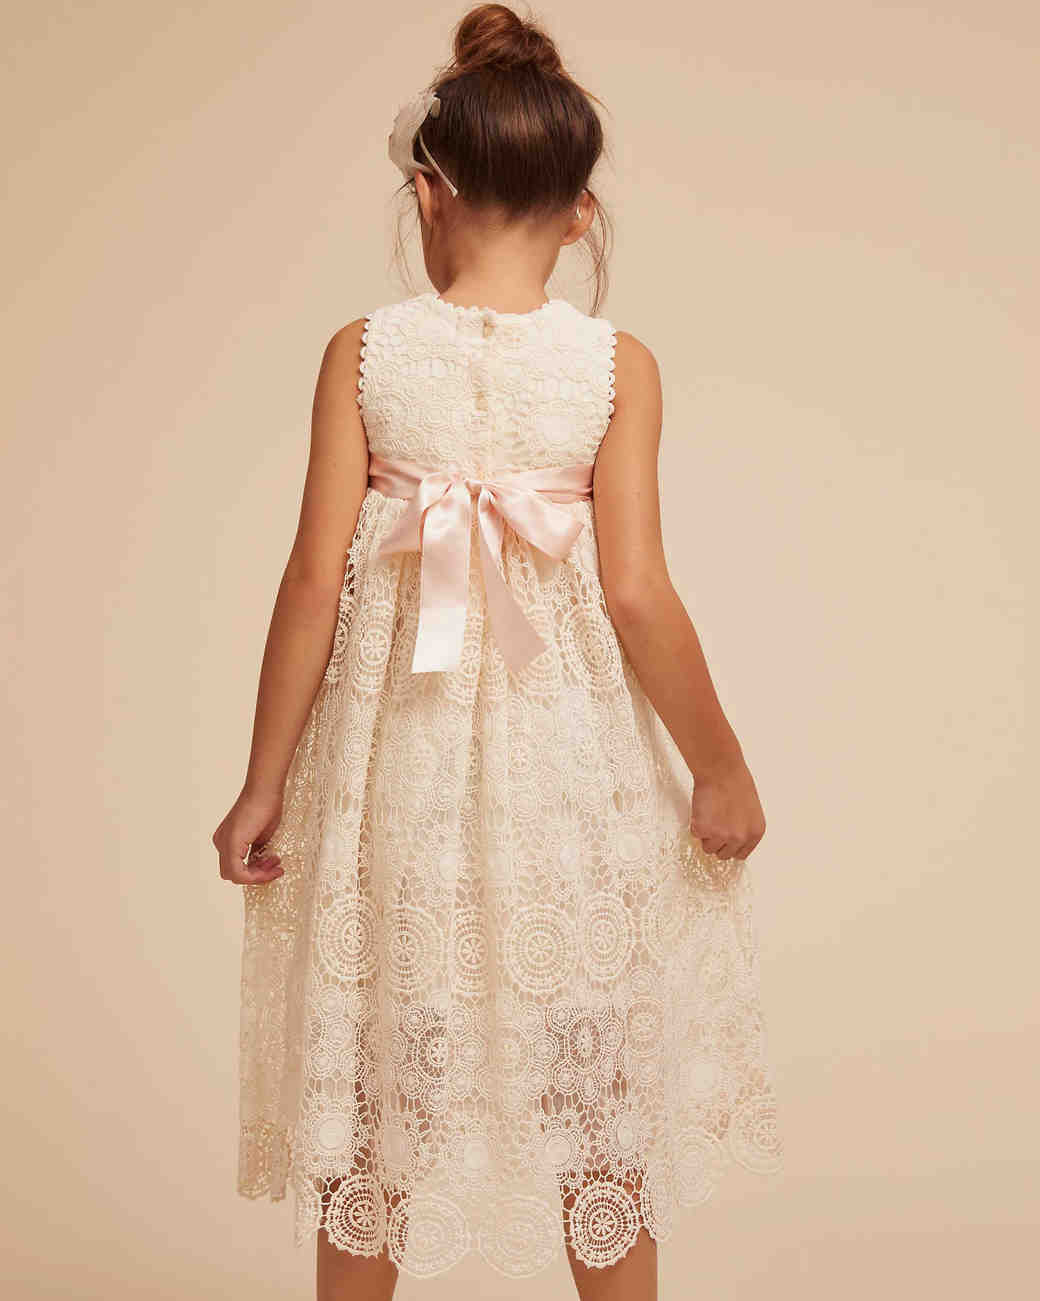 e88b3a40fcd 30 Adorable Flower Girl Dresses with Bows